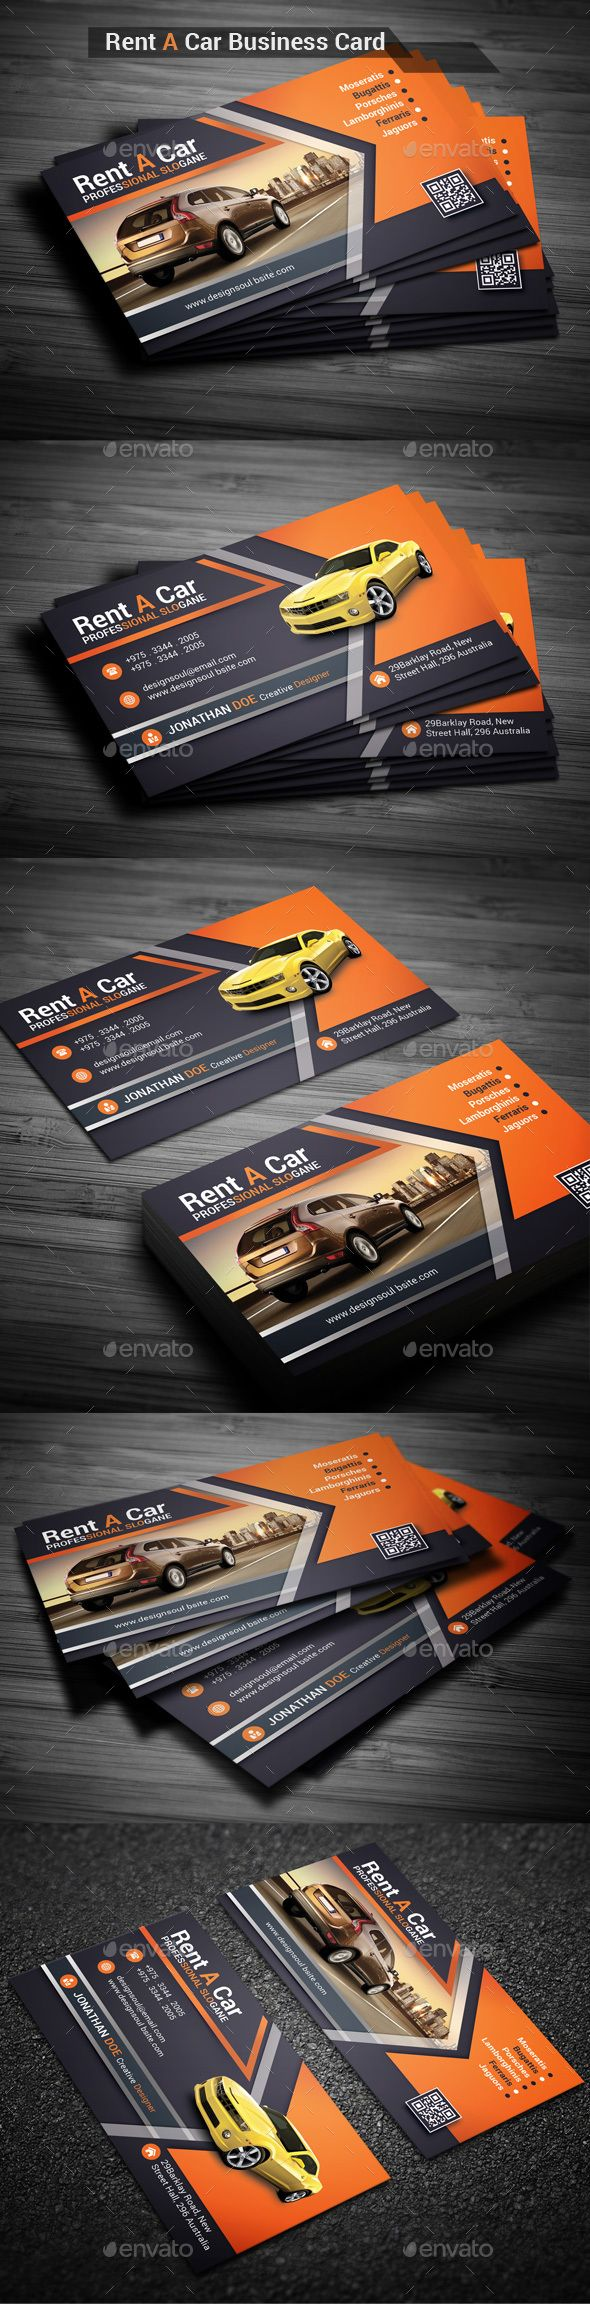 Rent a car business card business cards renting and business rent a car business card magicingreecefo Gallery